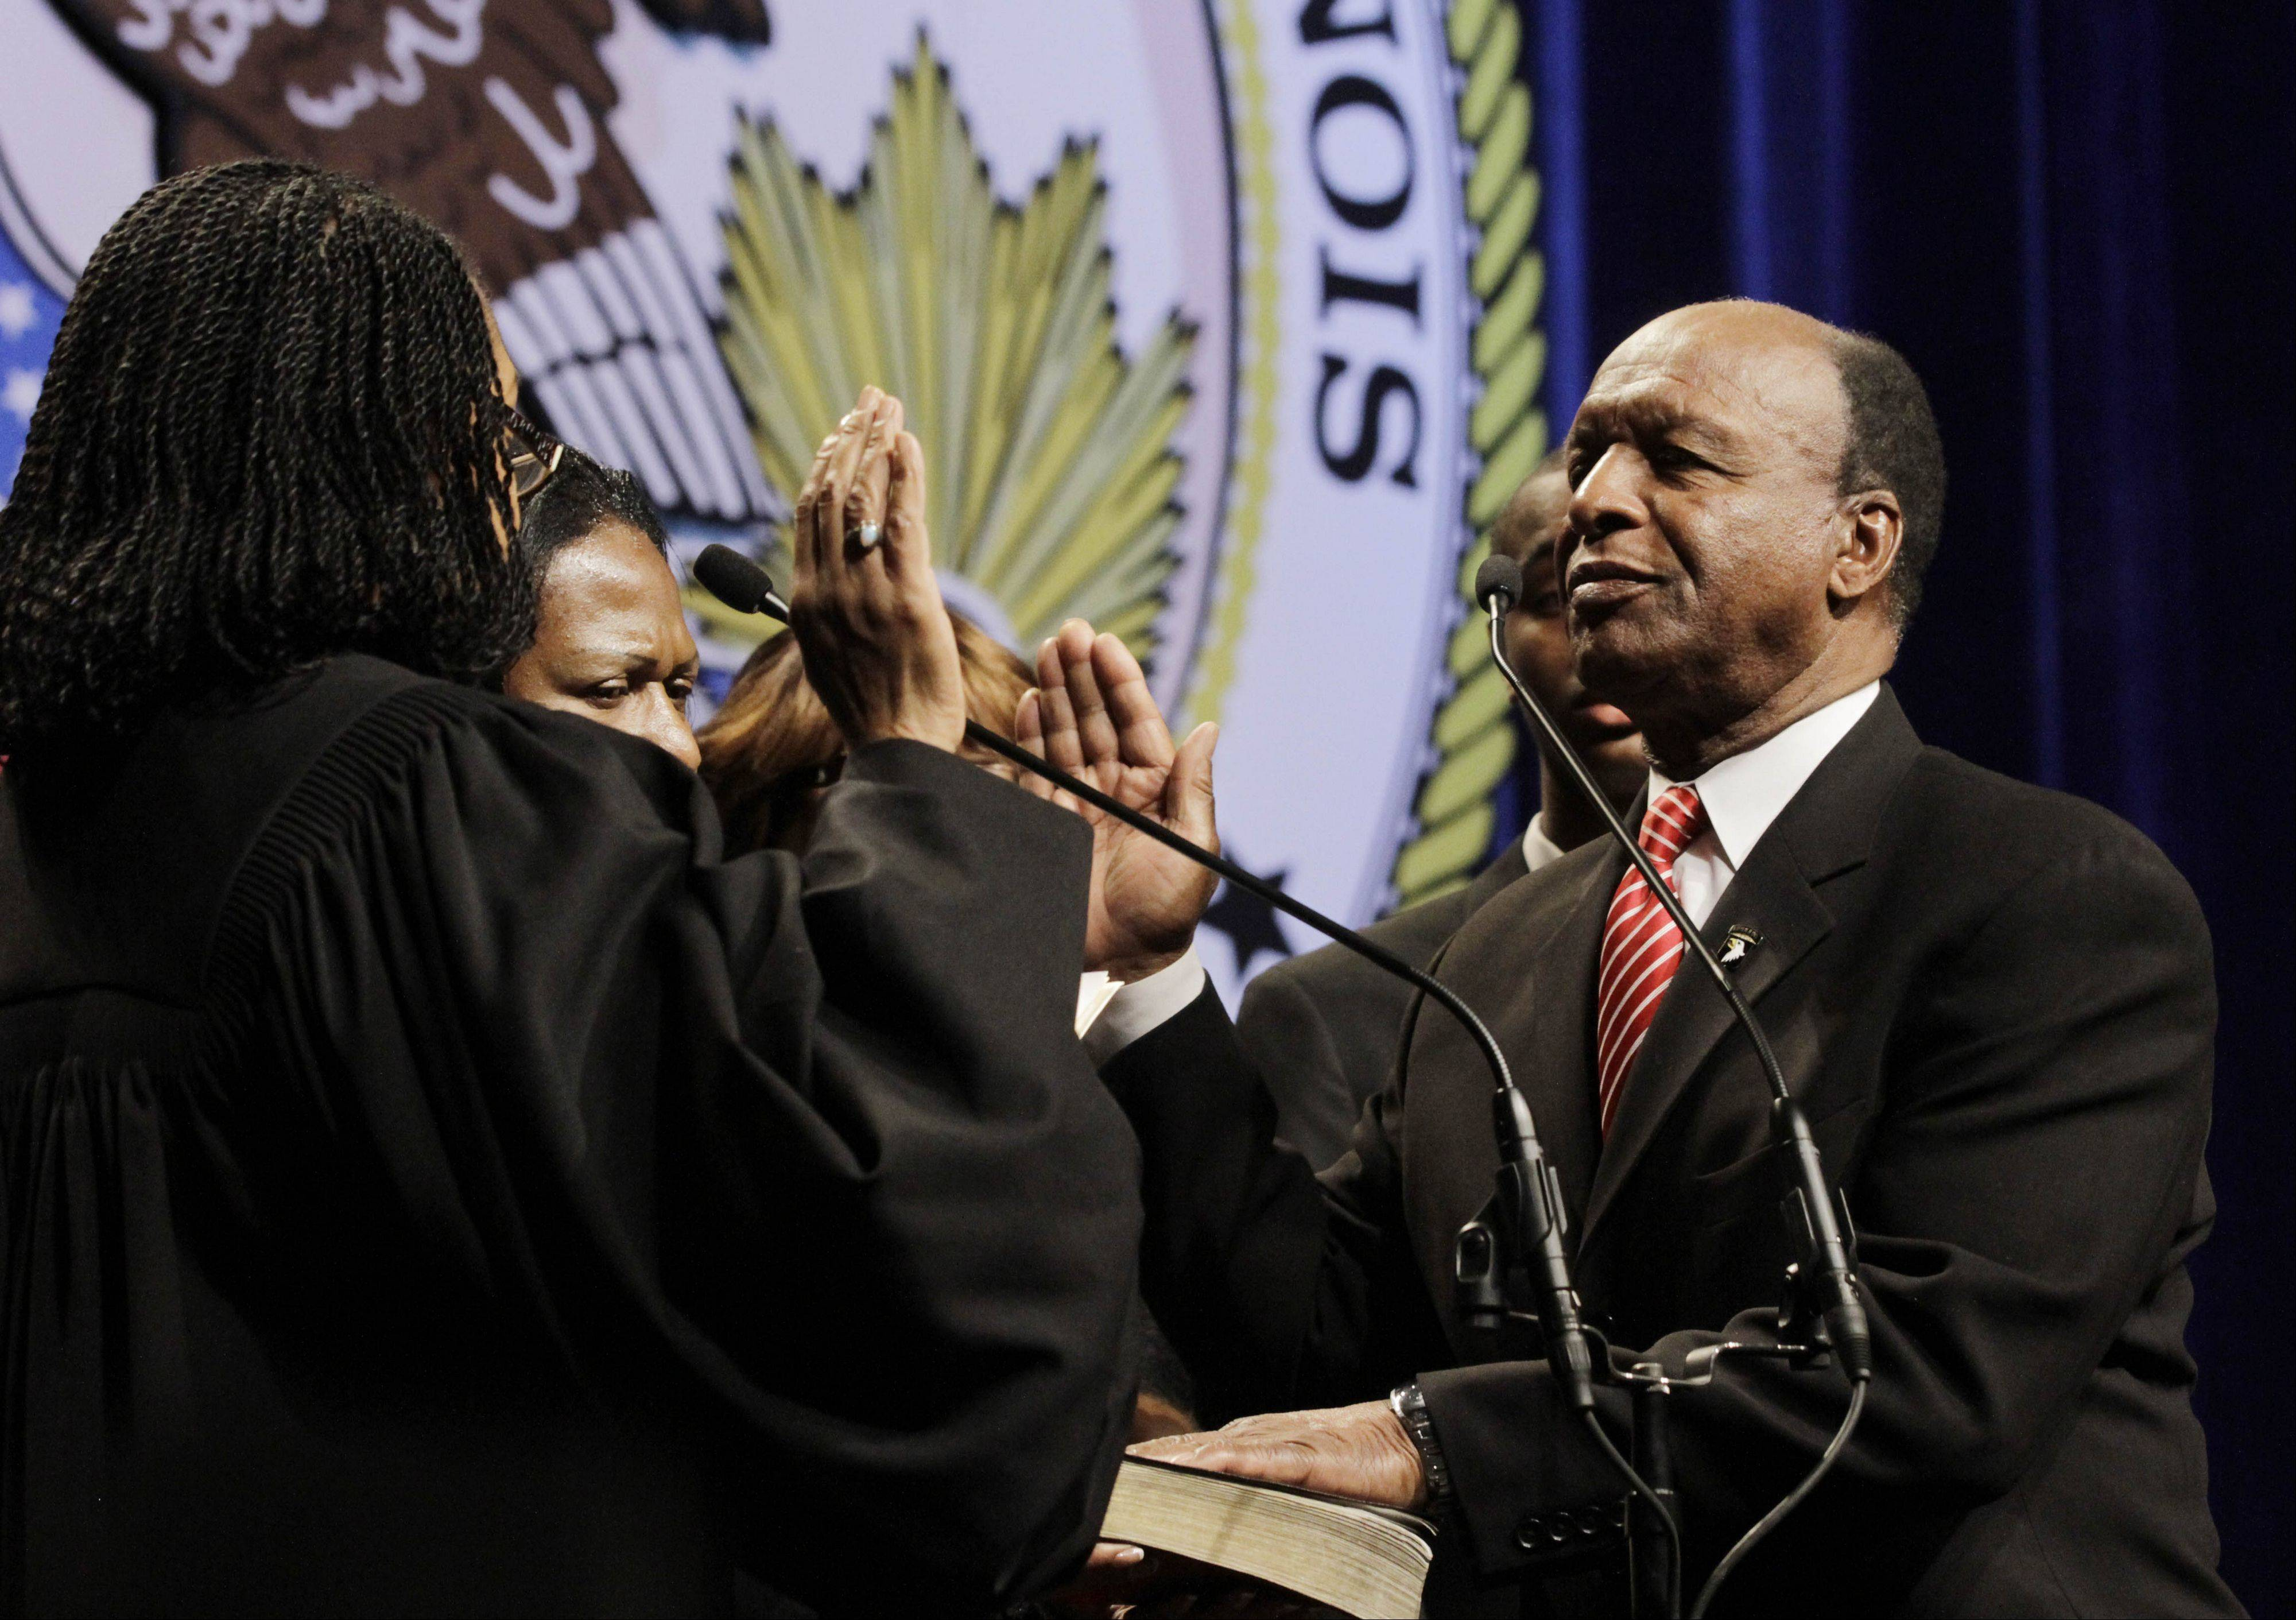 Secretary of State Jesse White takes the oath of office on Jan. 10, 2011, in Springfield. The 77-year-old Democrat announced Wednesday that he�ll seek a fifth term in 2014.